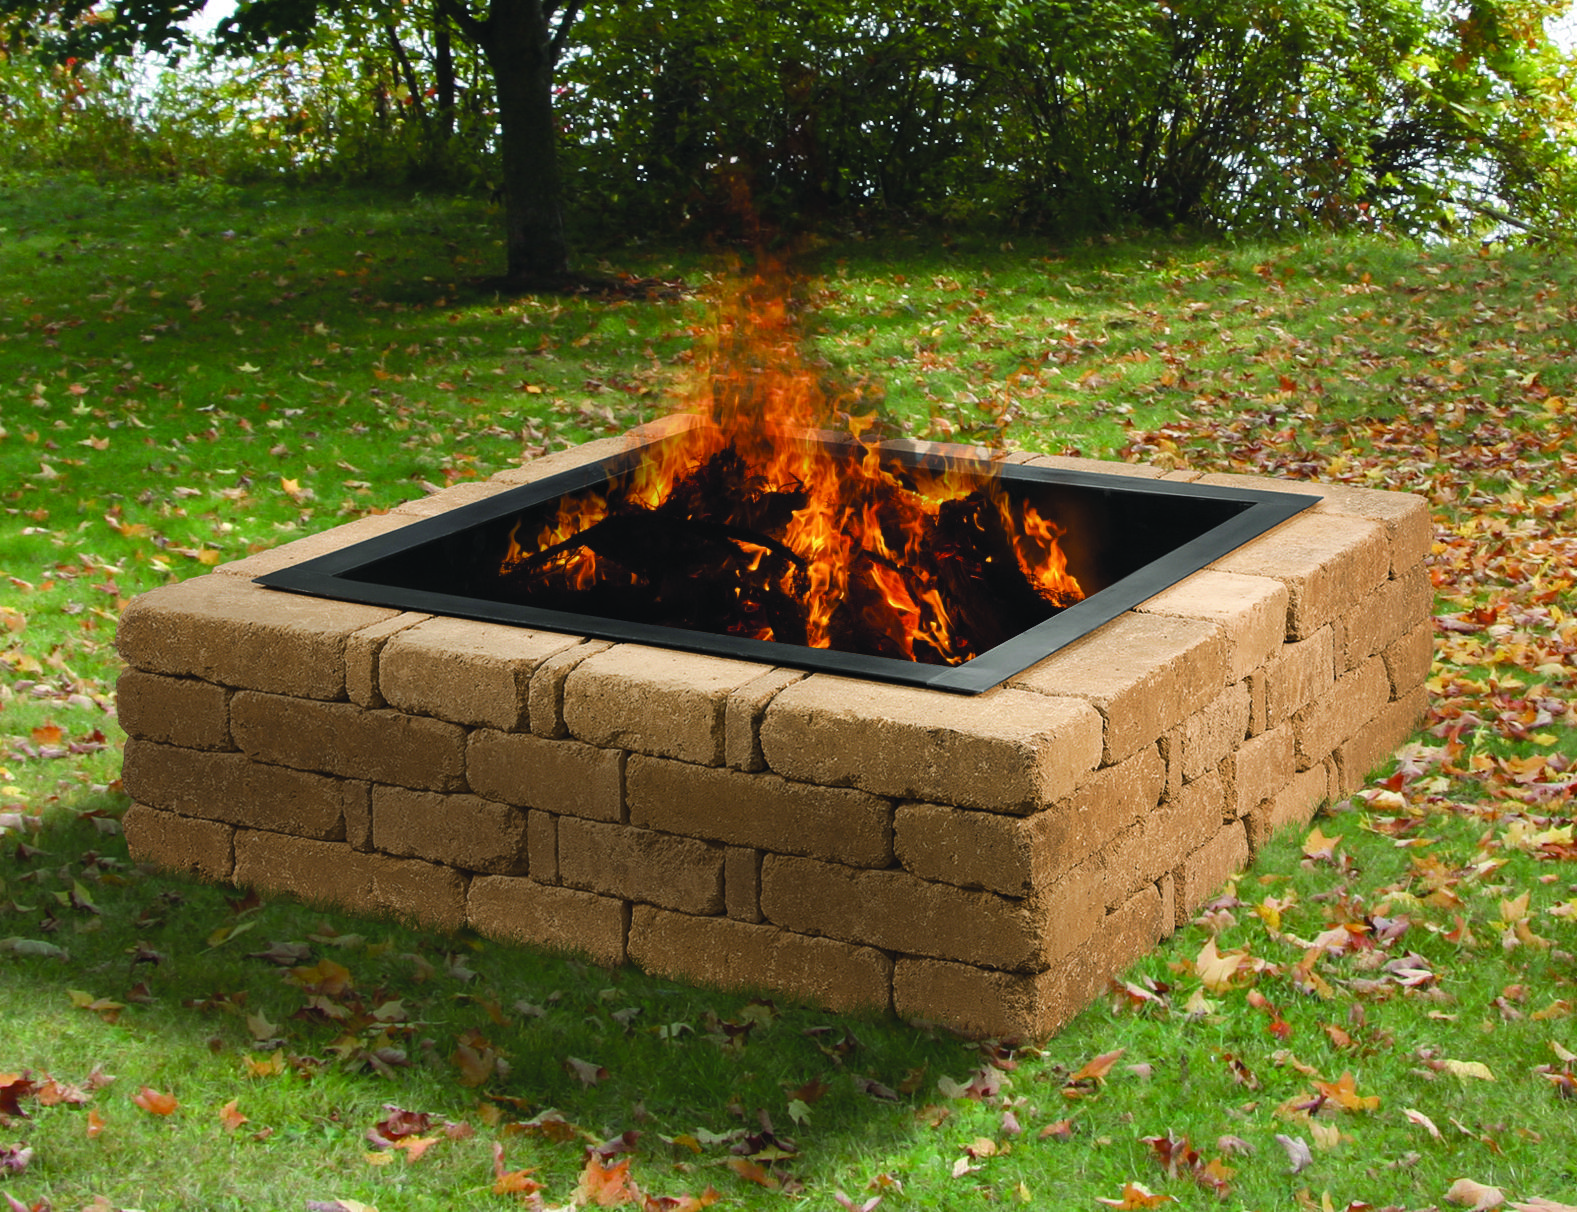 The Incindio Fire Pit Makes A Great Addition To Any Backyard Or Patio Fire Pit Decor Outdoor Landscaping Fire Pit Backyard